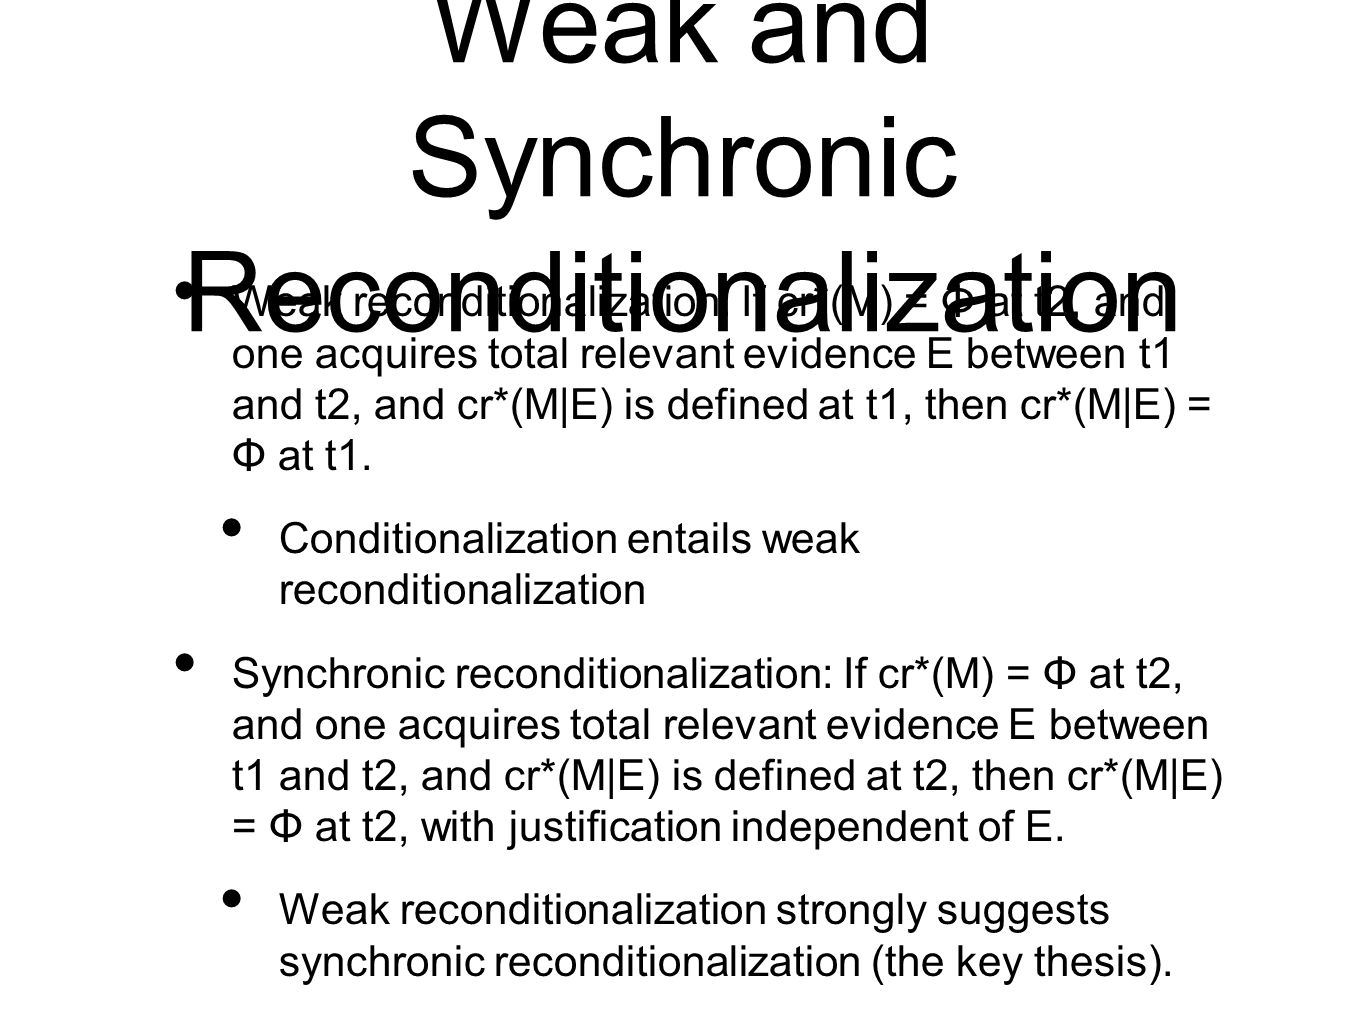 Weak and Synchronic Reconditionalization Weak reconditionalization: If cr*(M) = Φ at t2, and one acquires total relevant evidence E between t1 and t2, and cr*(M|E) is defined at t1, then cr*(M|E) = Φ at t1.